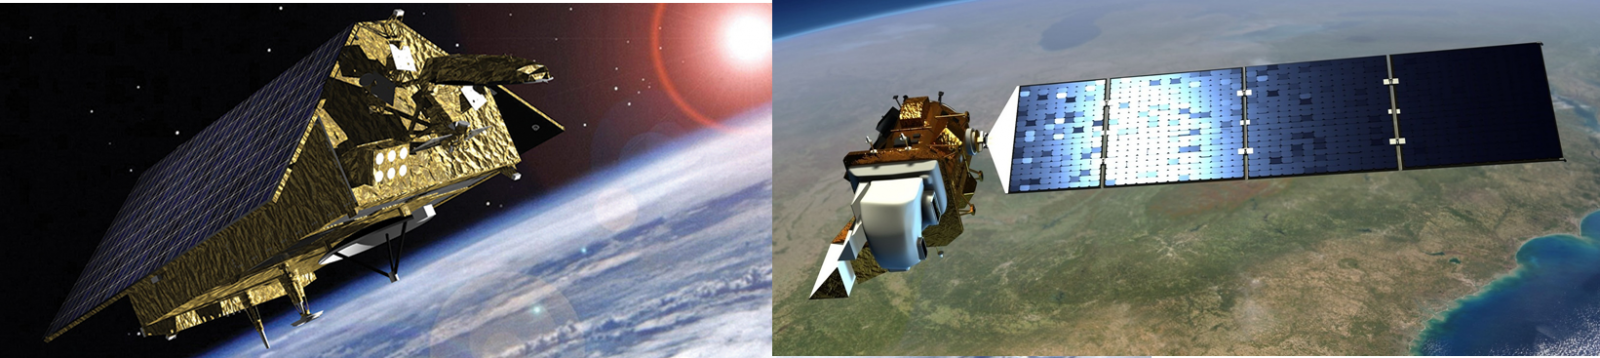 NASA has announced launch contract awards for the Landsat 9 and Sentinel 6A spacecraft. Image Credit NASA